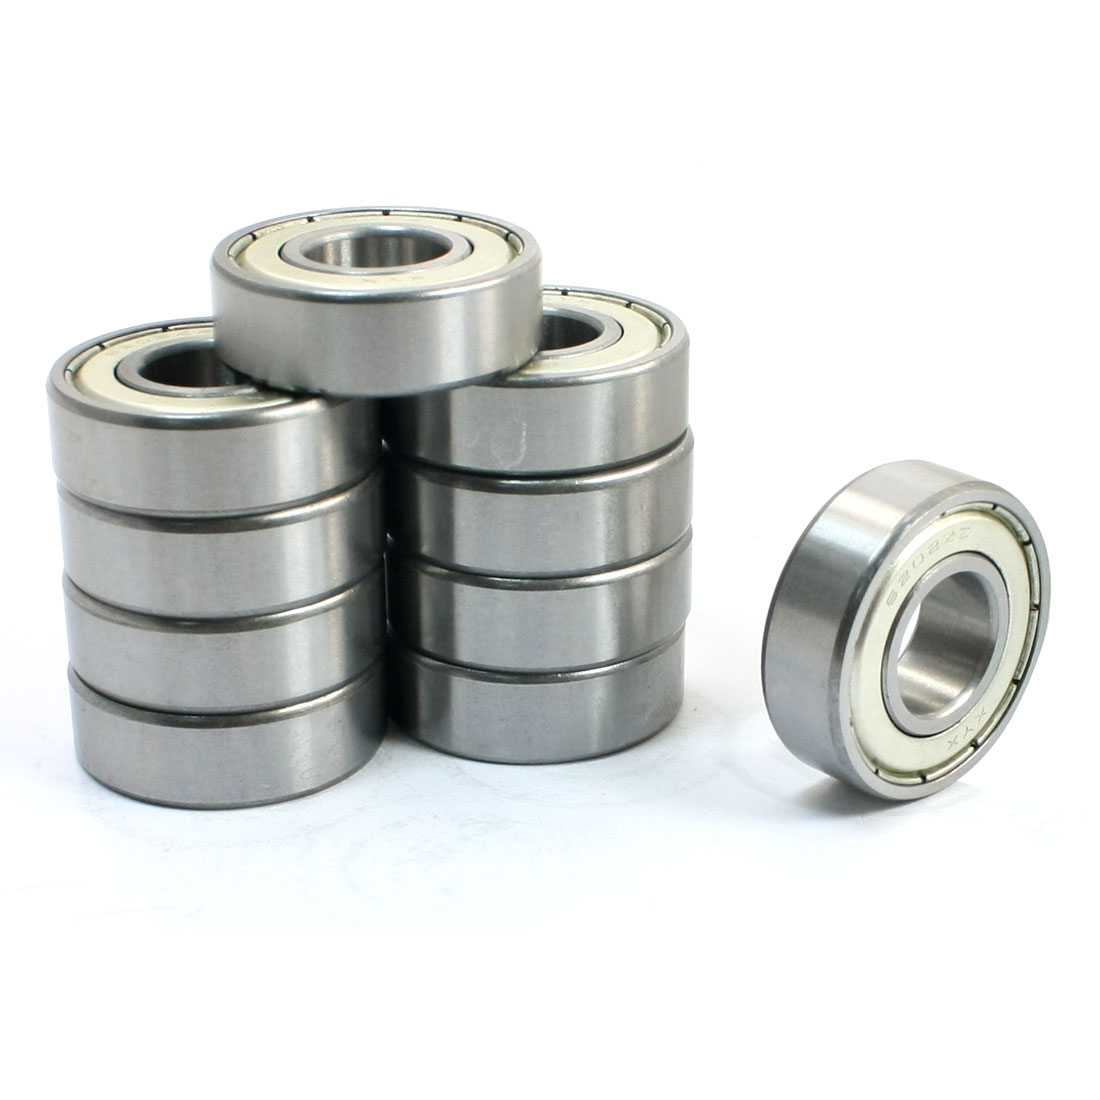 10 Pcs 6202ZZ 15 x 35 x 11mm Single Row Shielded Deep Groove Ball Bearings